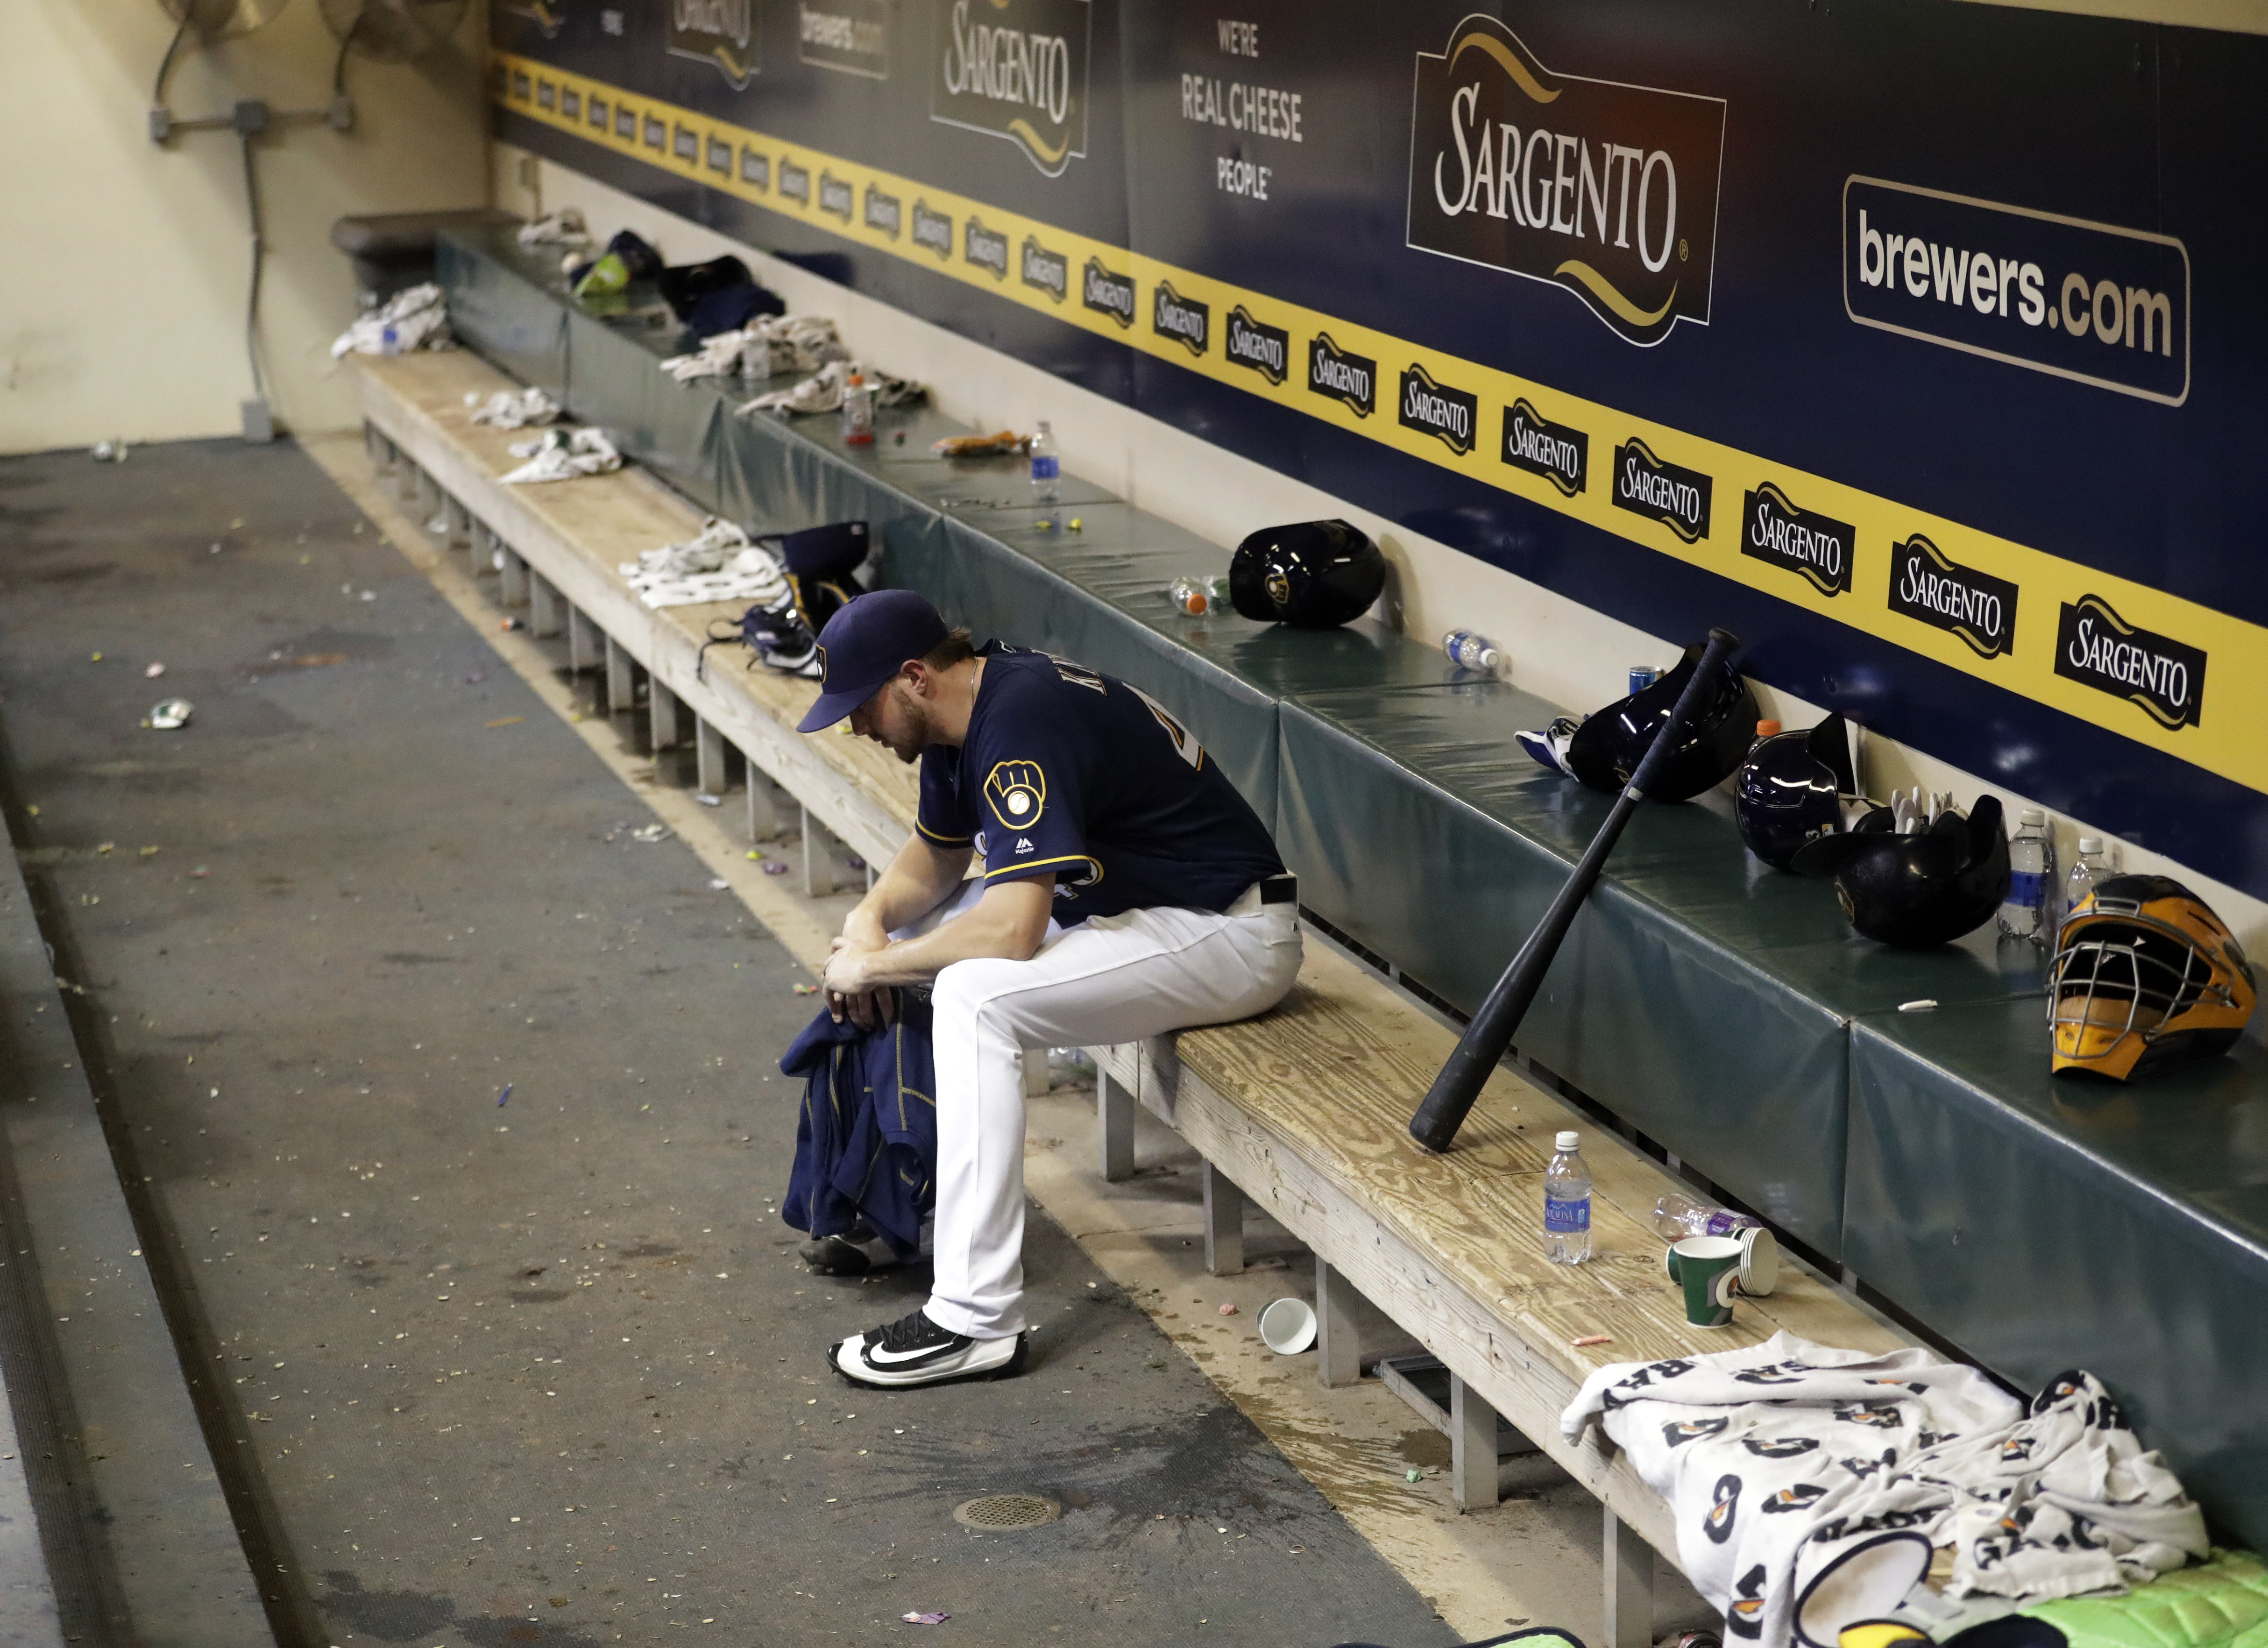 St. Louis Cardinals relief pitcher Kevin Siegrist sits alone in the dugout after the 10th inning of a baseball game against the St. Louis Cardinals Tuesday, Aug. 30, 2016, in Milwaukee. The Cardinals won 2-1. (AP Photo/Morry Gash)